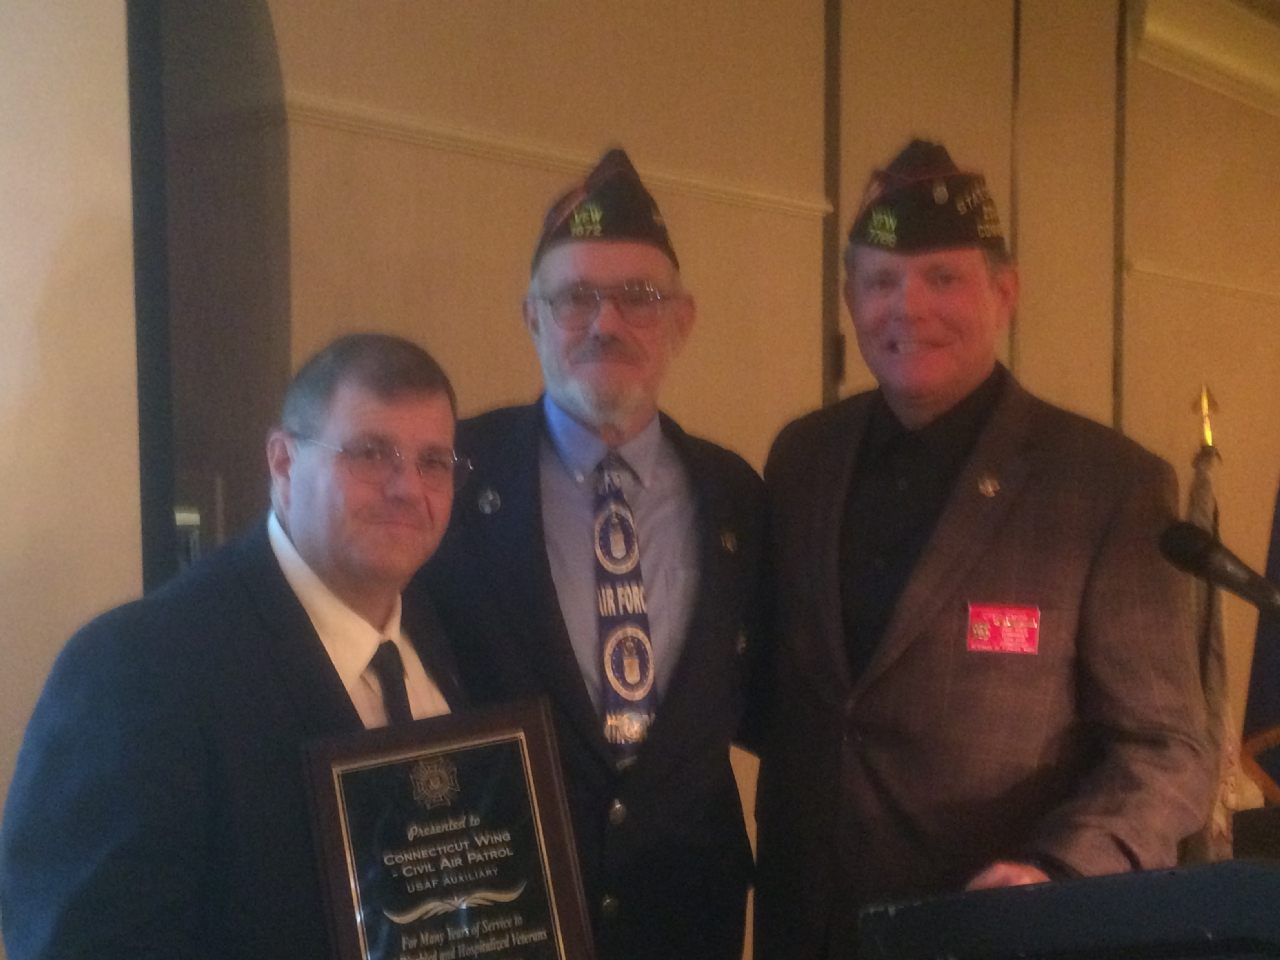 Honored to join VFW State Commander Jim Delancy in presenting an award for service to Colonel James Ridley and the Connecticut Civil Air Patrol and Air Force Cadet programs.